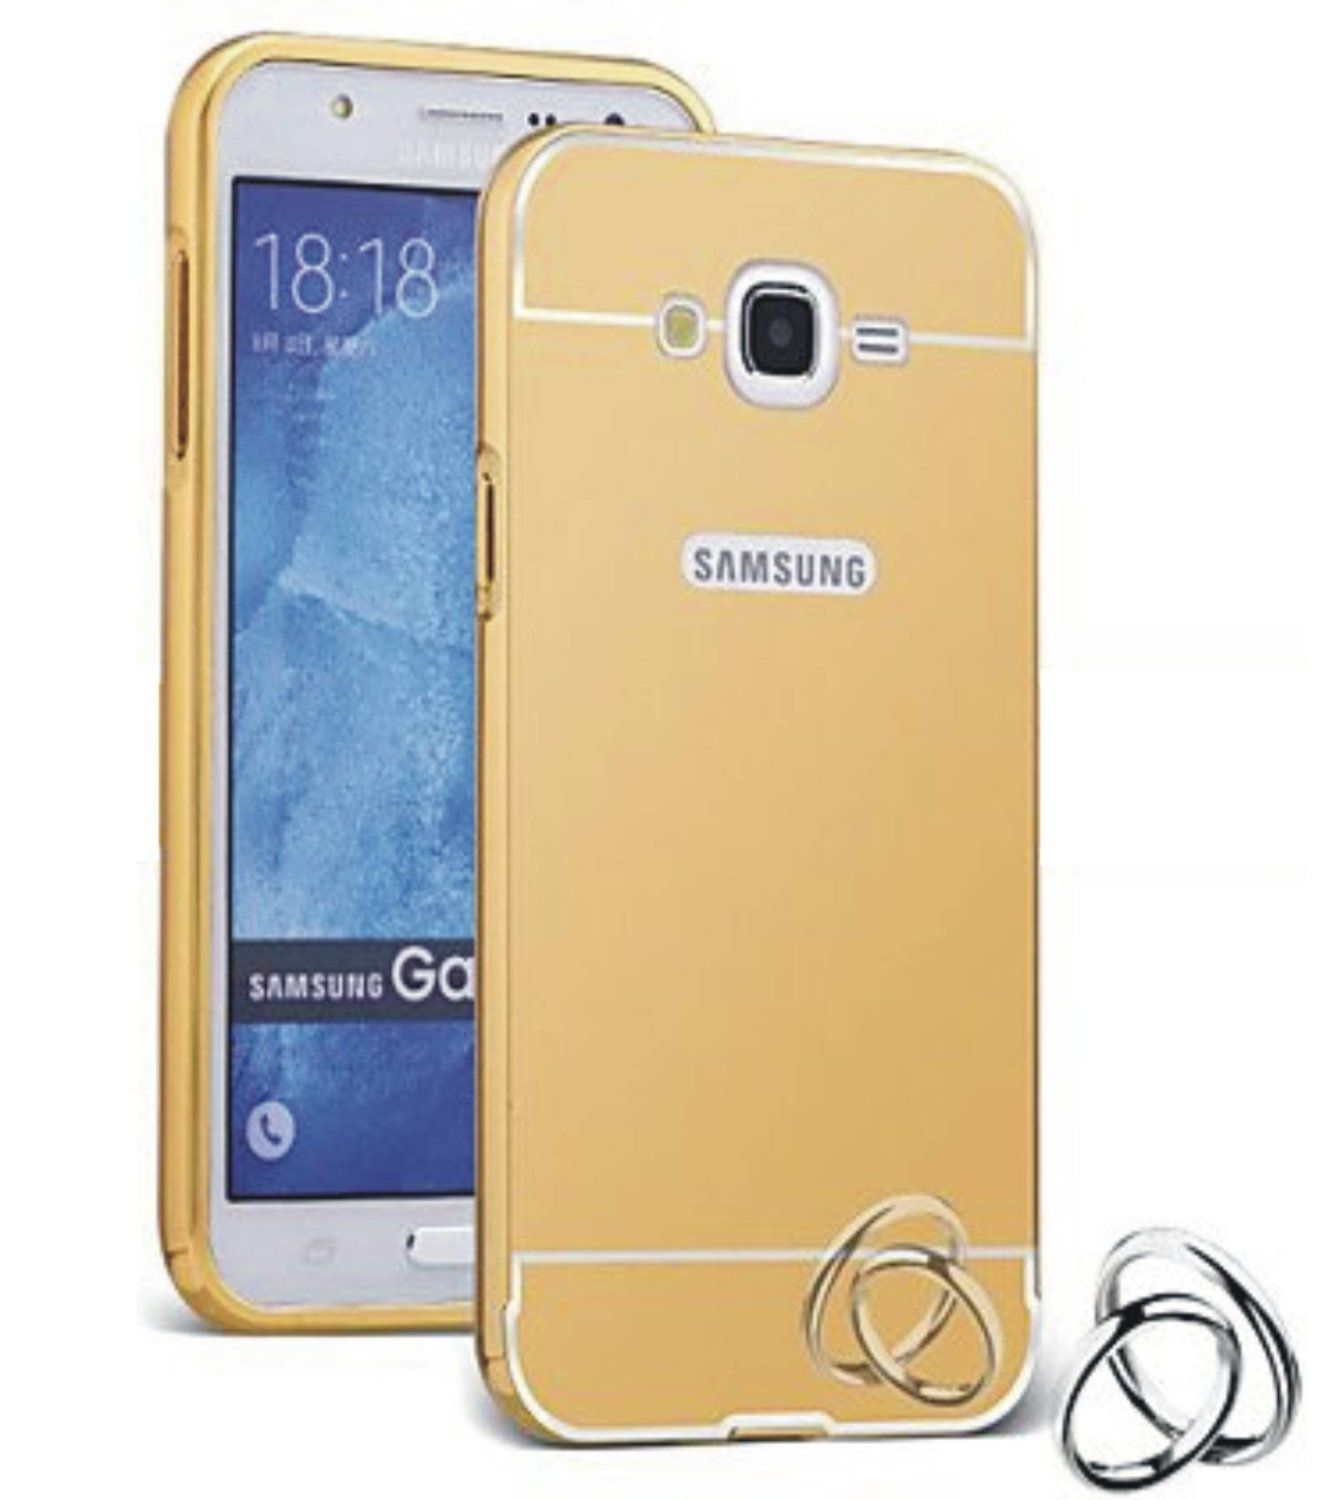 Style Crome Metal Bumper + Acrylic Mirror Back Cover Case For Samsung A8 Gold + Flexible Portable Thumb OK Stand